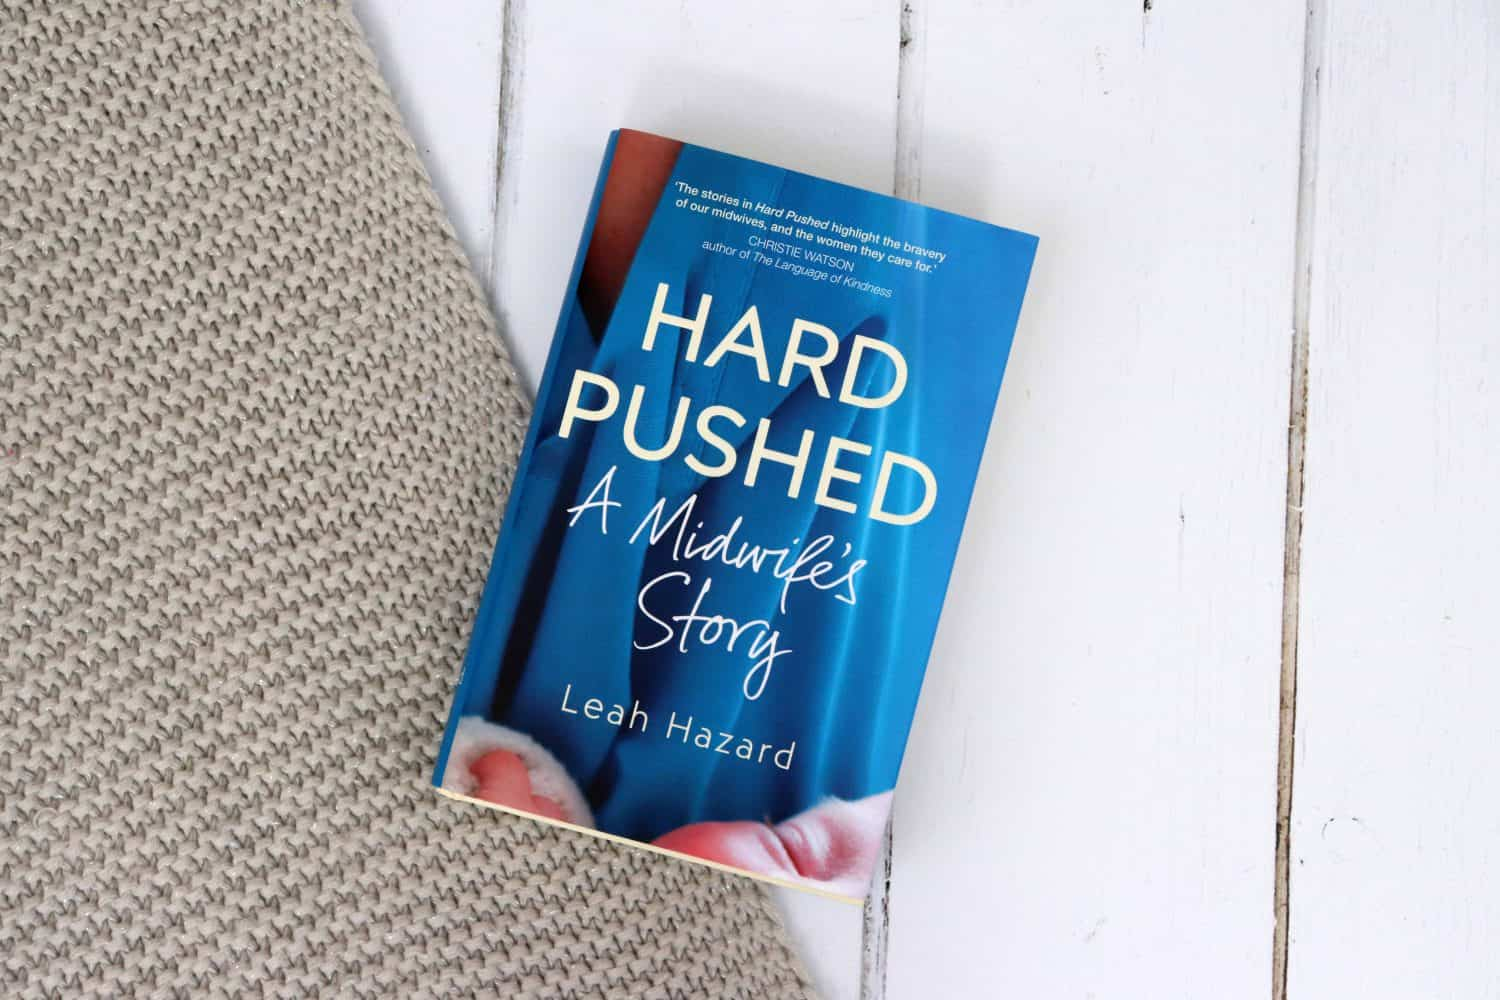 Hard Pushed: A Midwife's Story - Leah Hazard